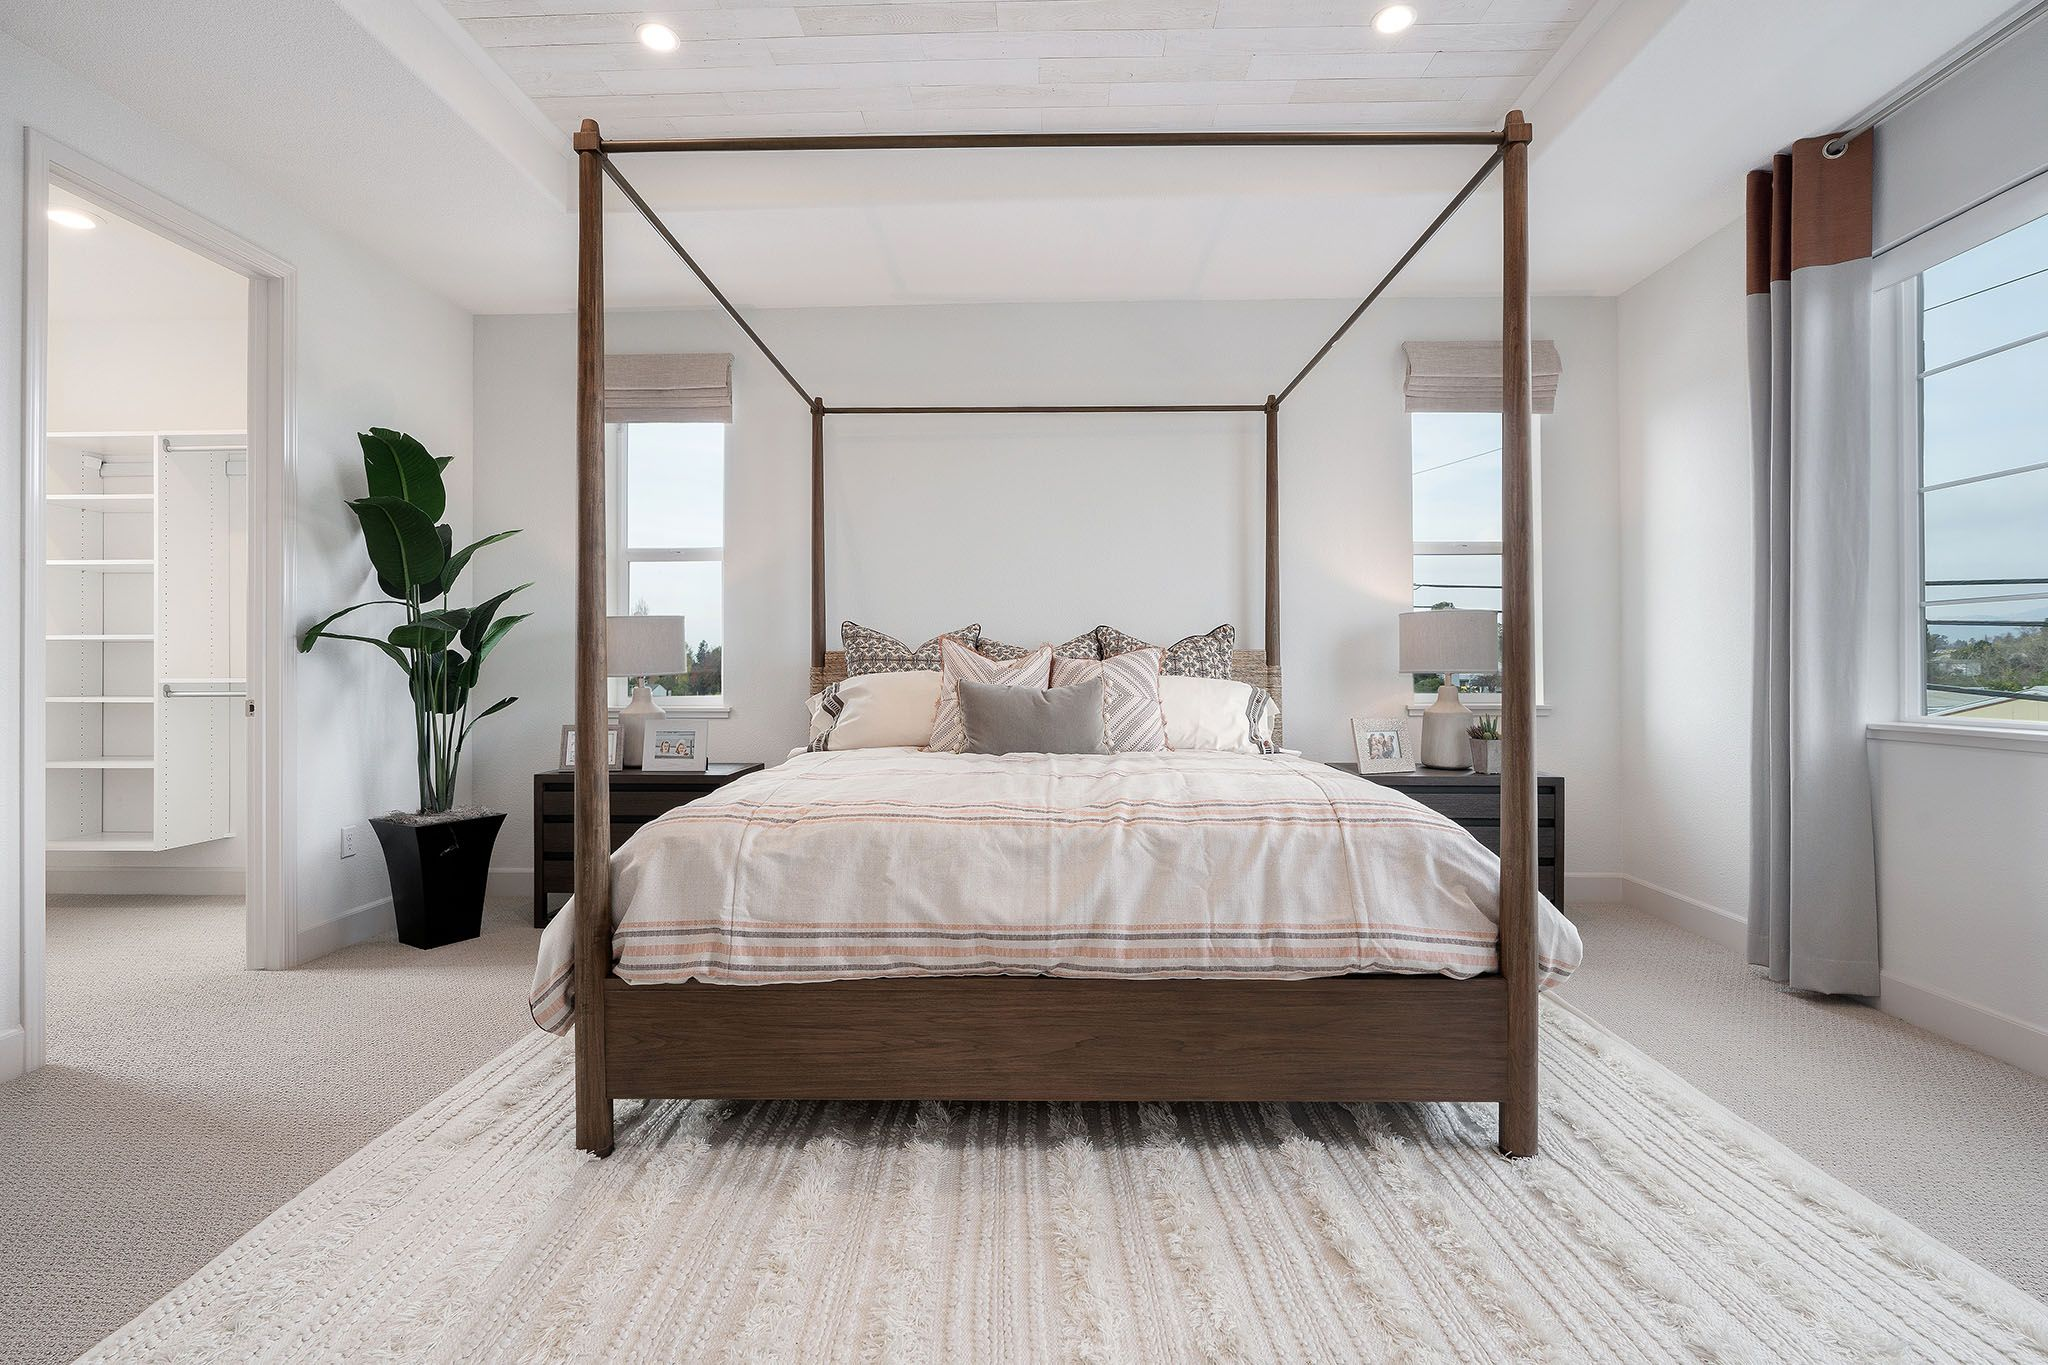 Bedroom featured in the Audrey By Discovery Homes in Vallejo-Napa, CA